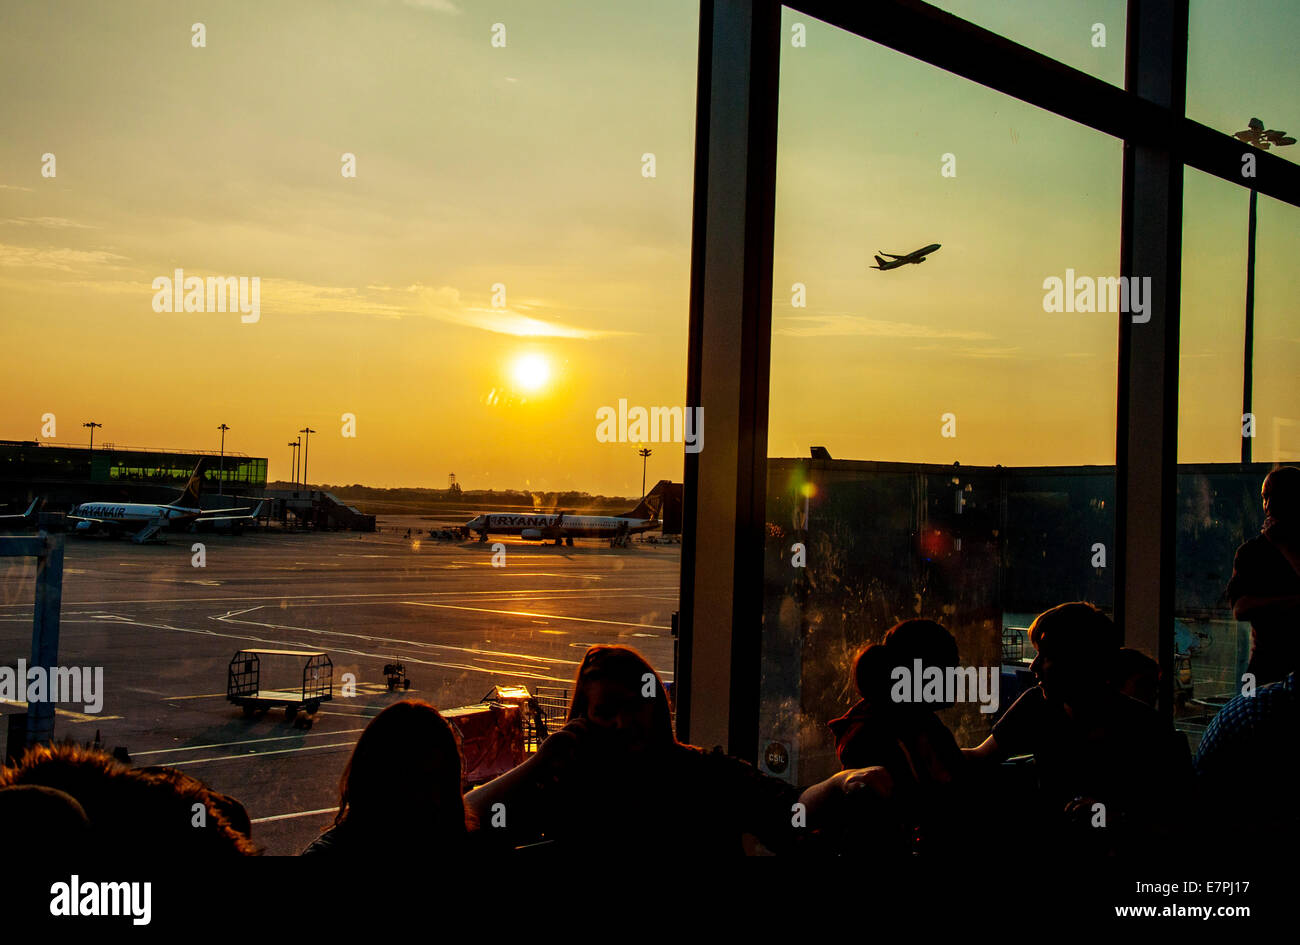 Stansted Airport UK.  Pasengers waiting in departure lounge at sunset. On-time performance of scheduled flights - Stock Image